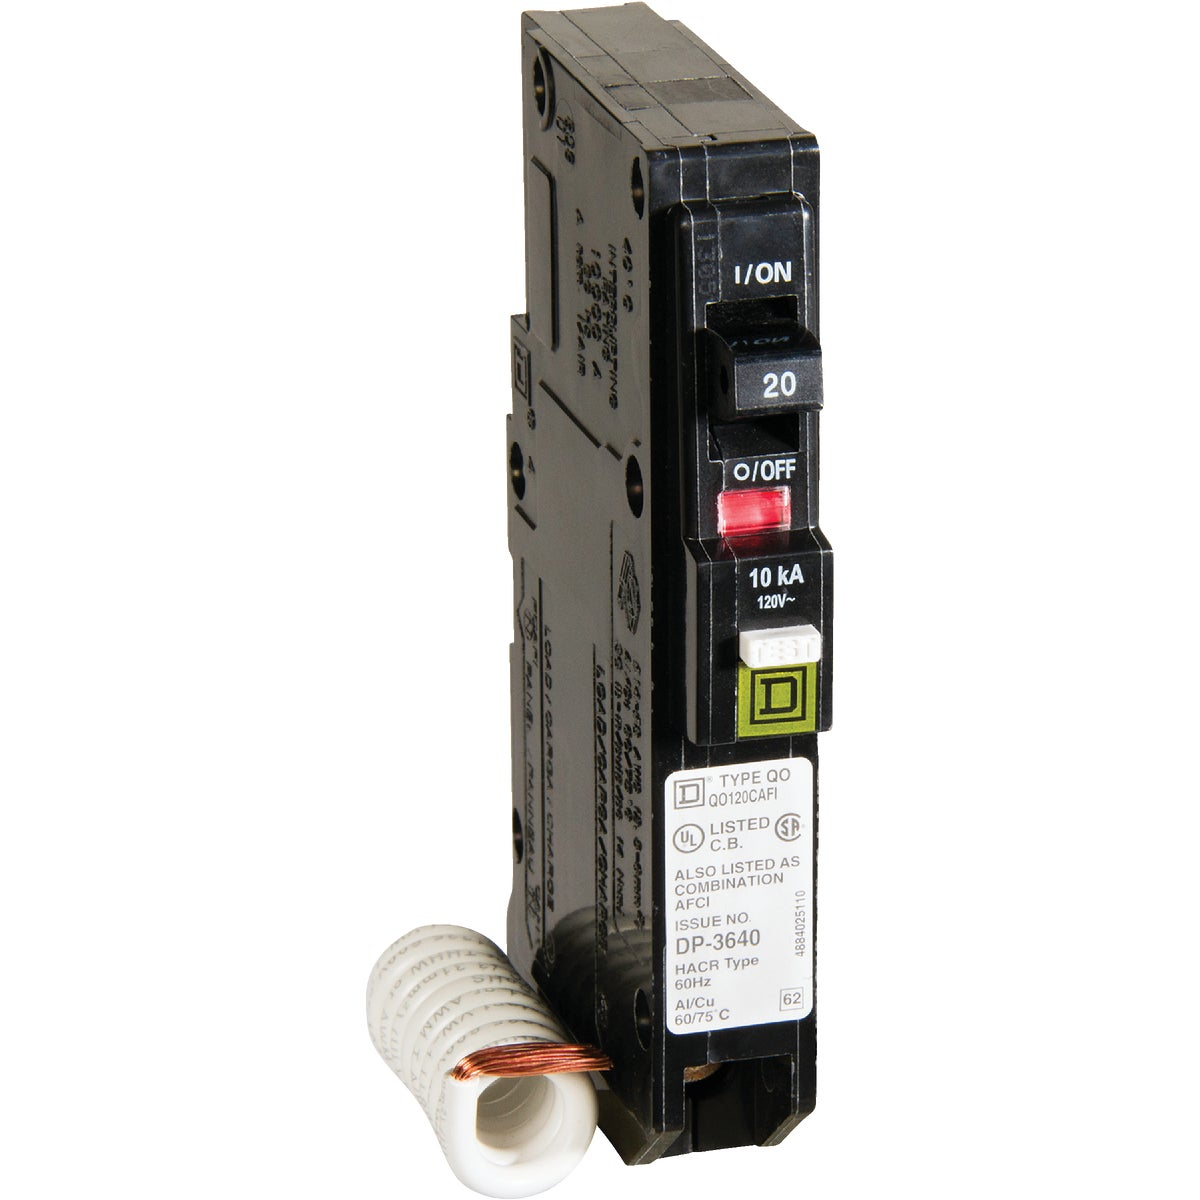 COMBO ARC FAULT BREAKER - QO120CAFIC by Square D Co